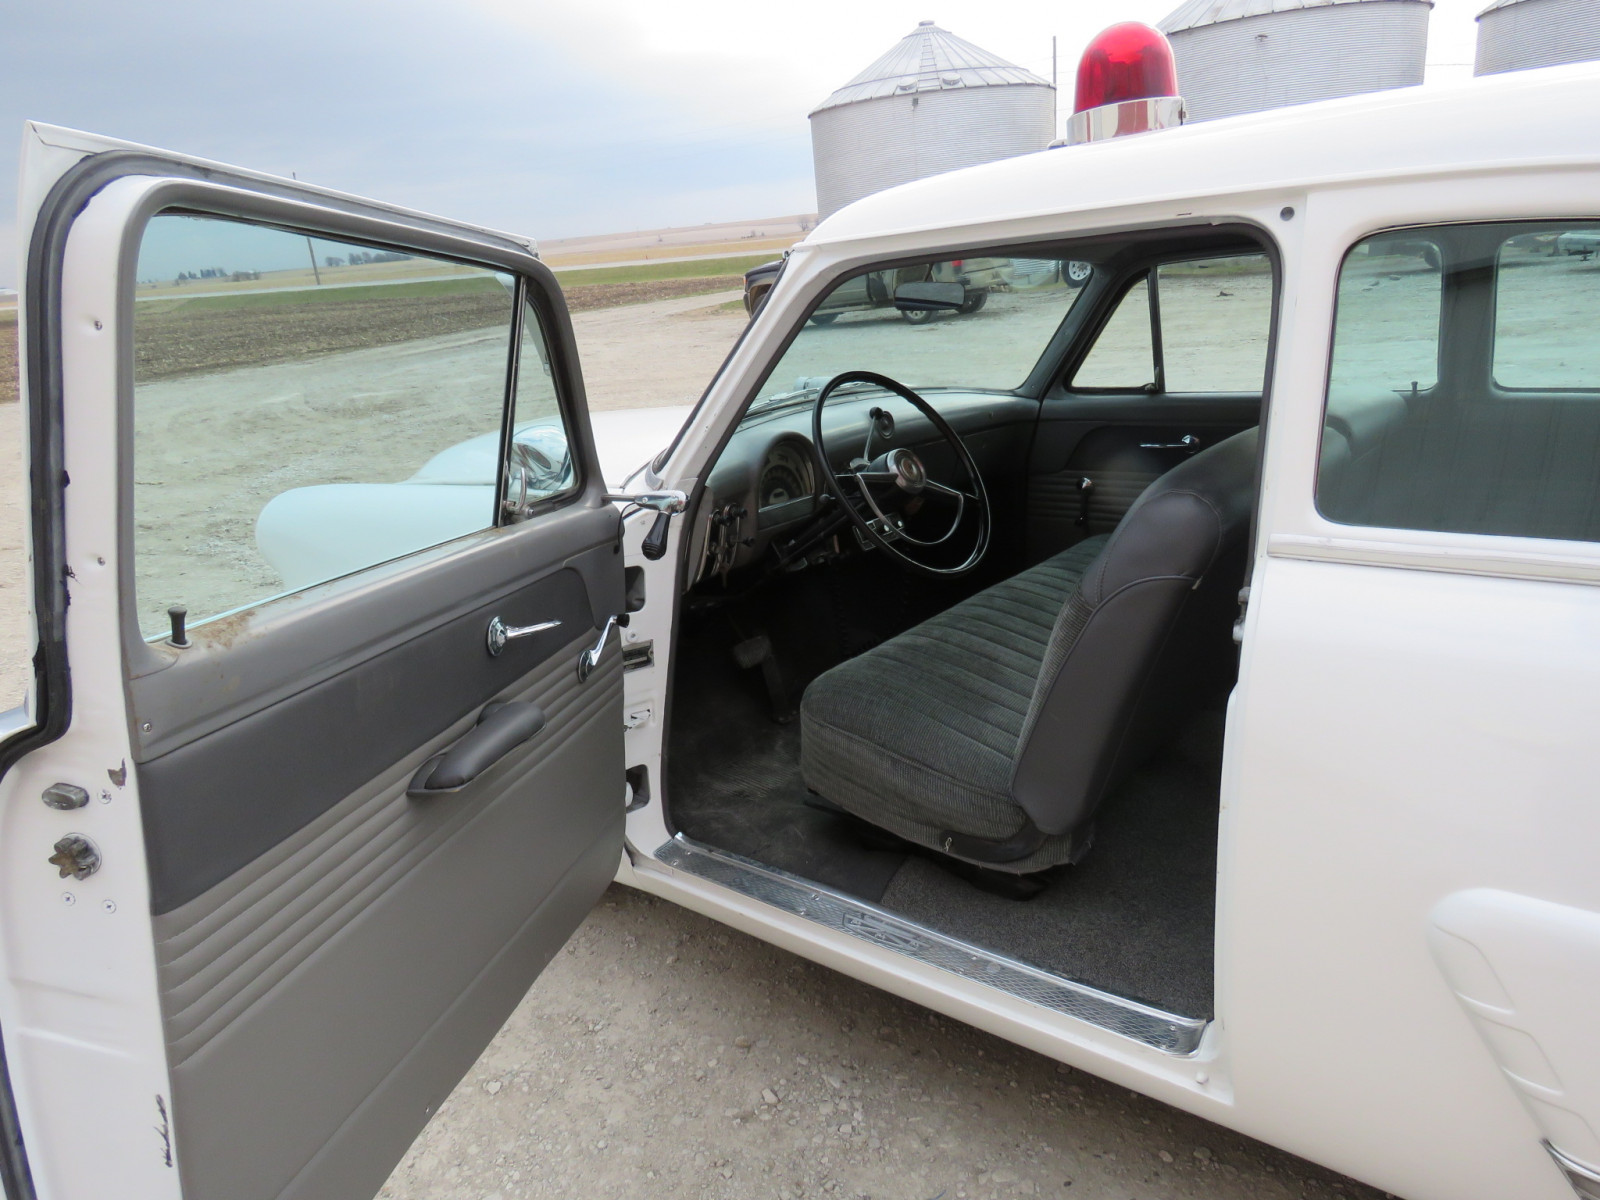 1953 Ford Mainline Iowa Patrol Car - Image 12